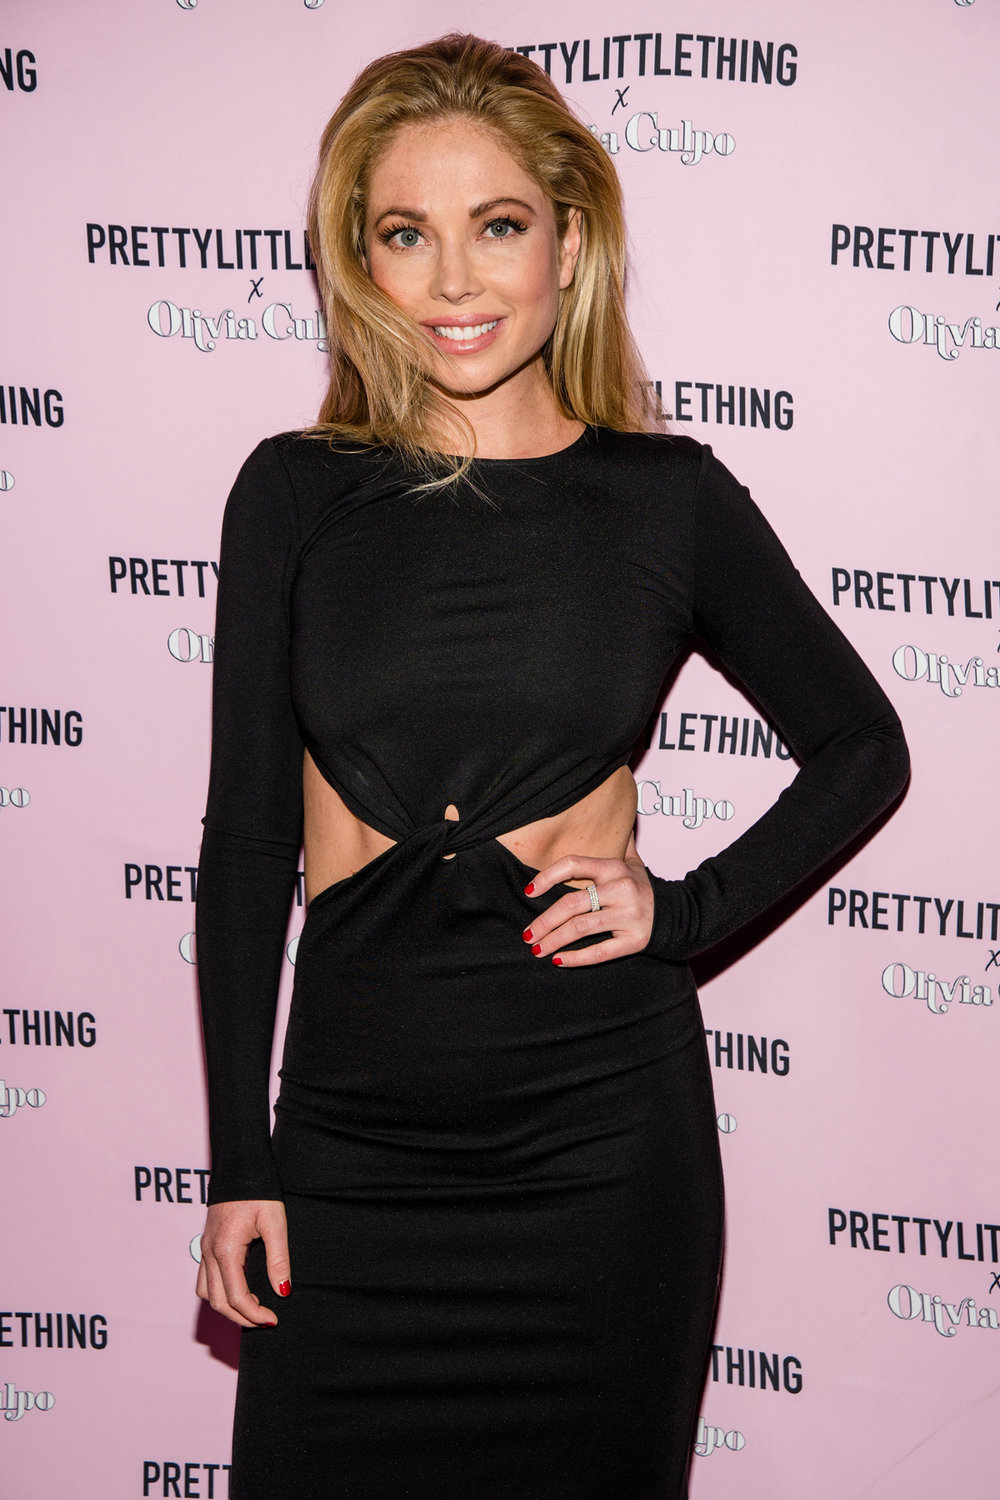 PrettyLittleThing PLT X Olivia Culpo Collection  Celebrity Launch Party Malea Rose.jpg